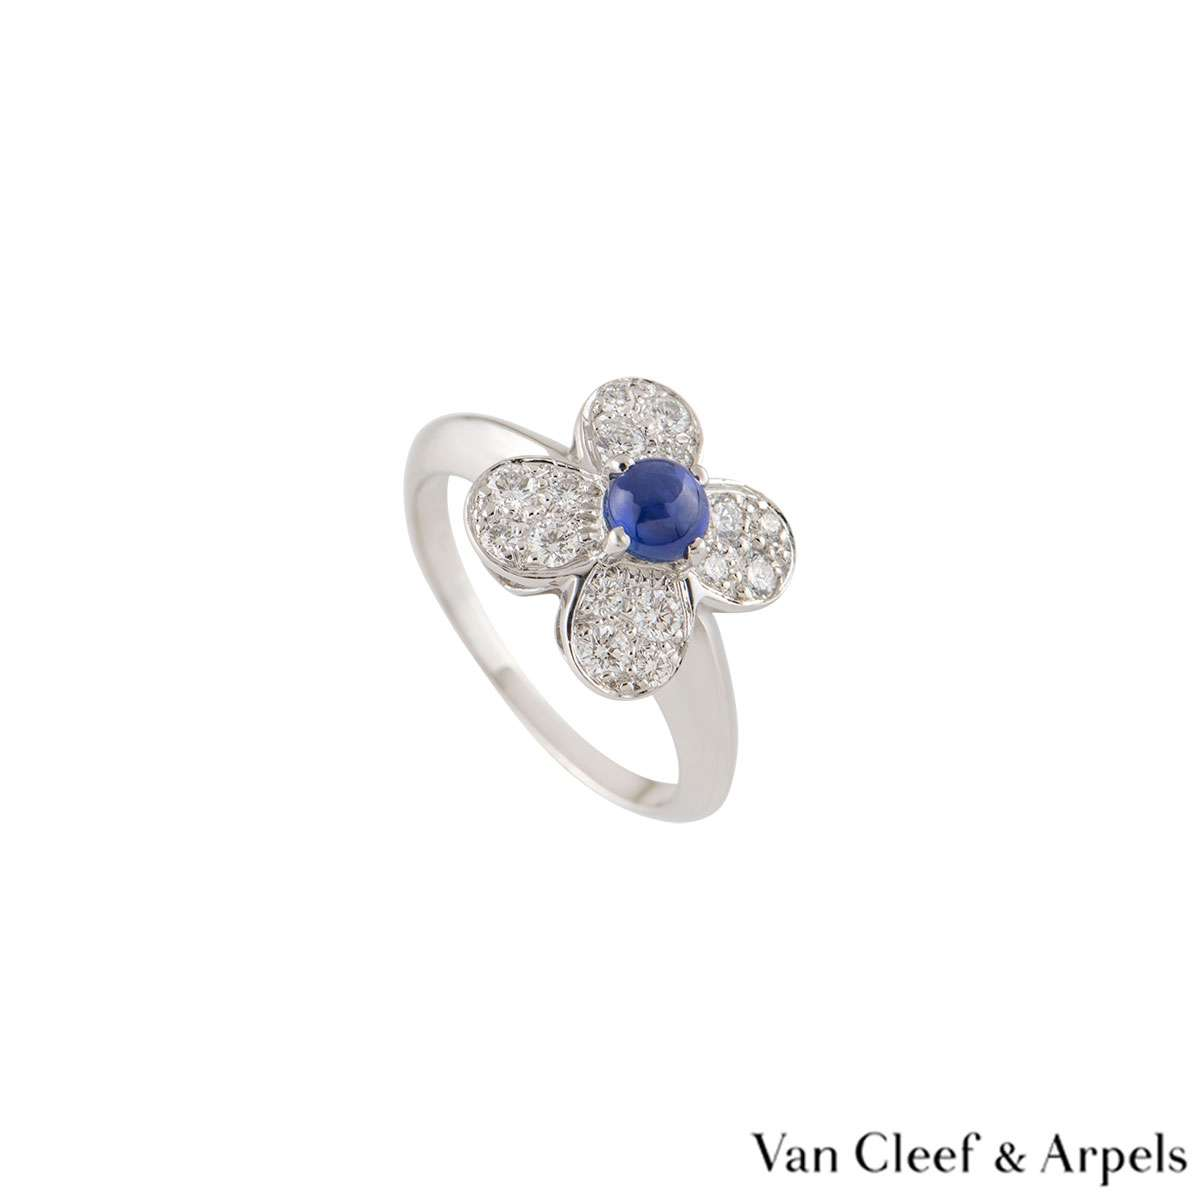 Van Cleef & Arpels White Gold Alhambra Ring